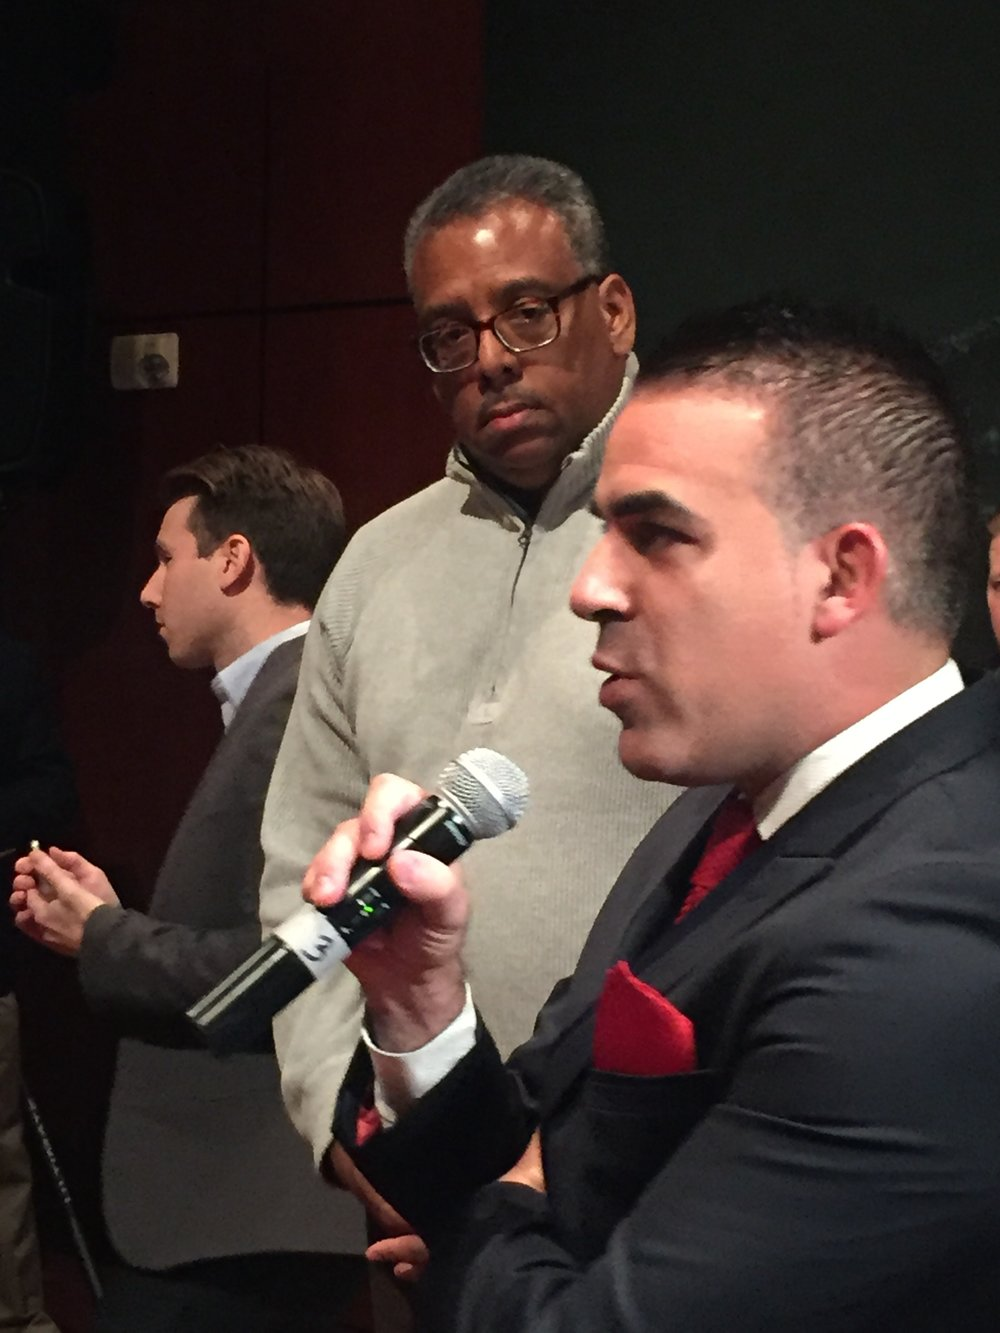 Alex Giron of Carsfera asking questions with Brian Armstead looking on